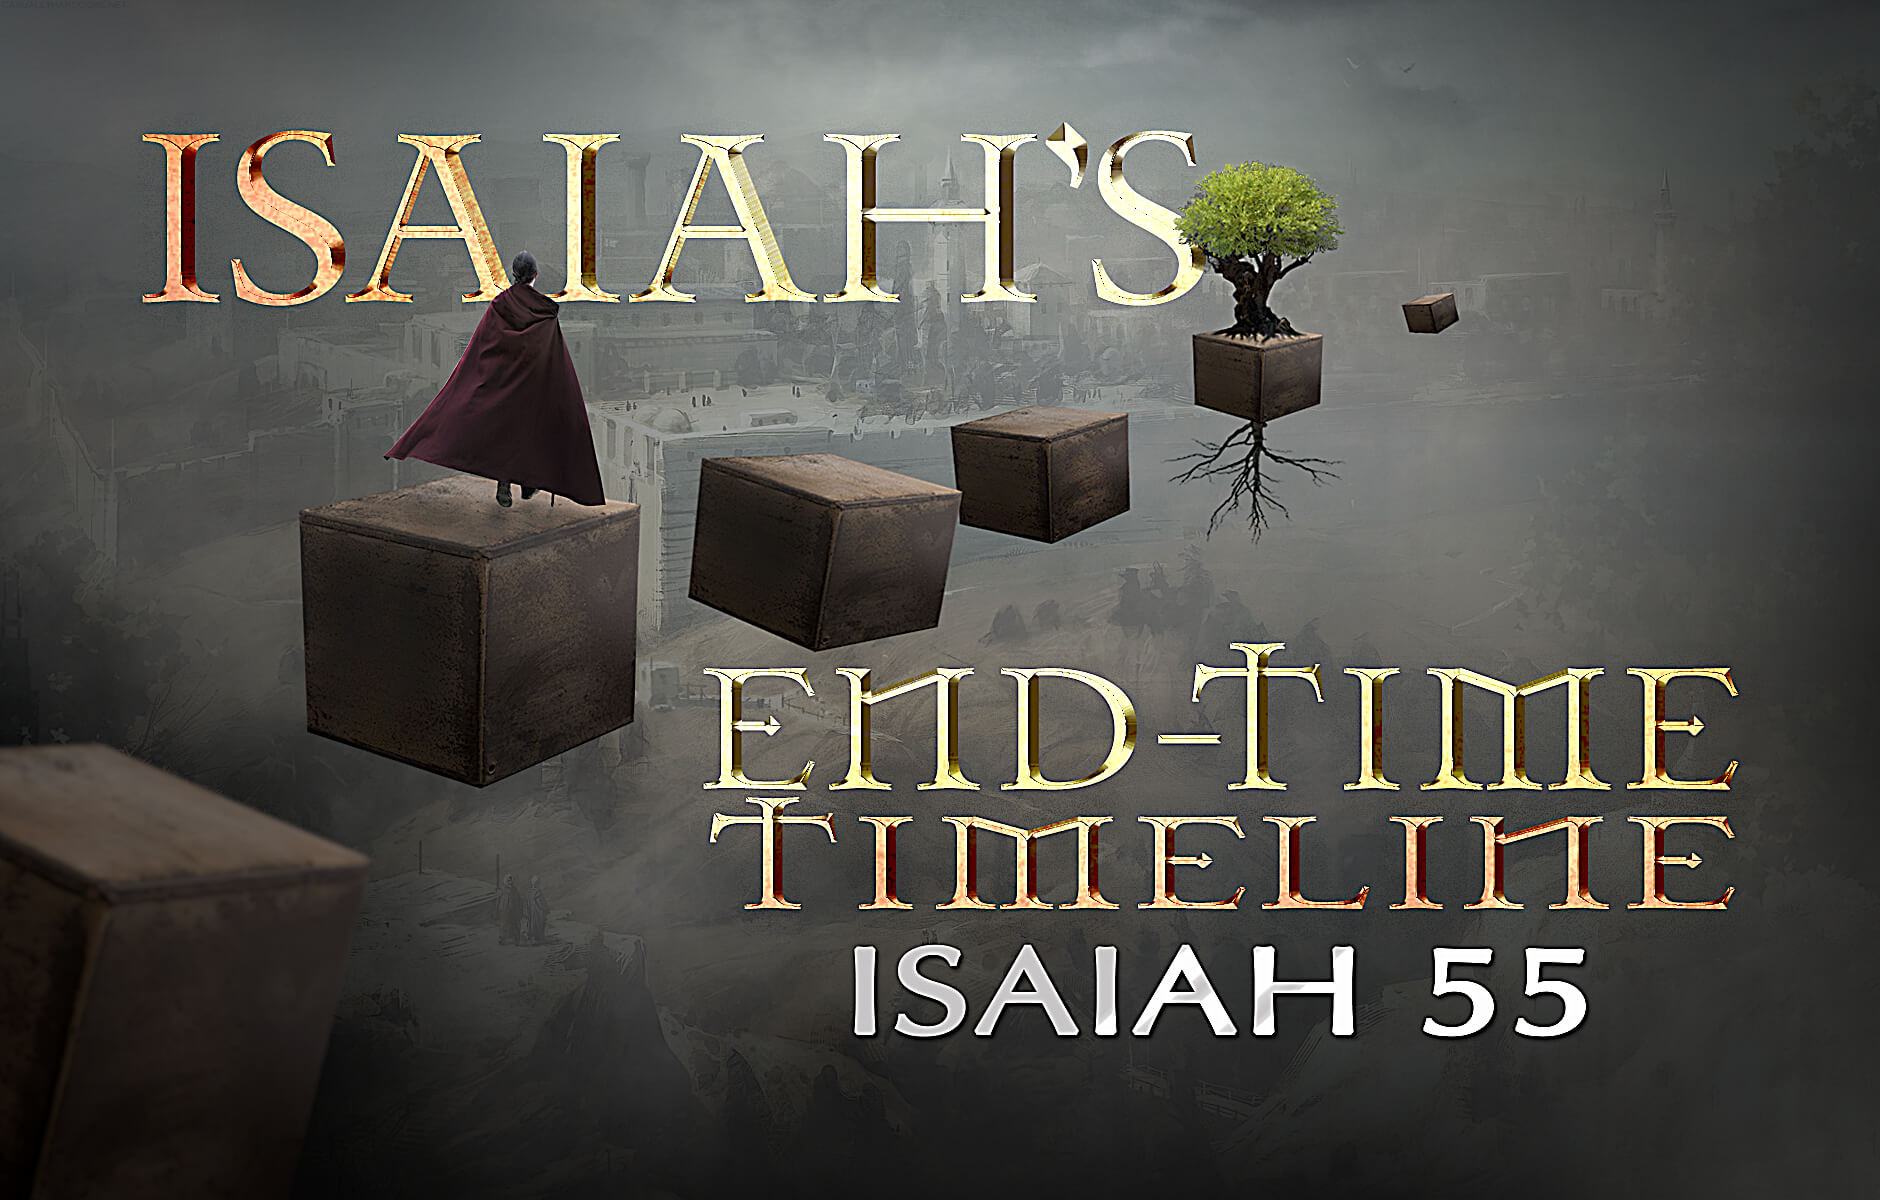 Isaiah's End-time Timeline Chapter 55